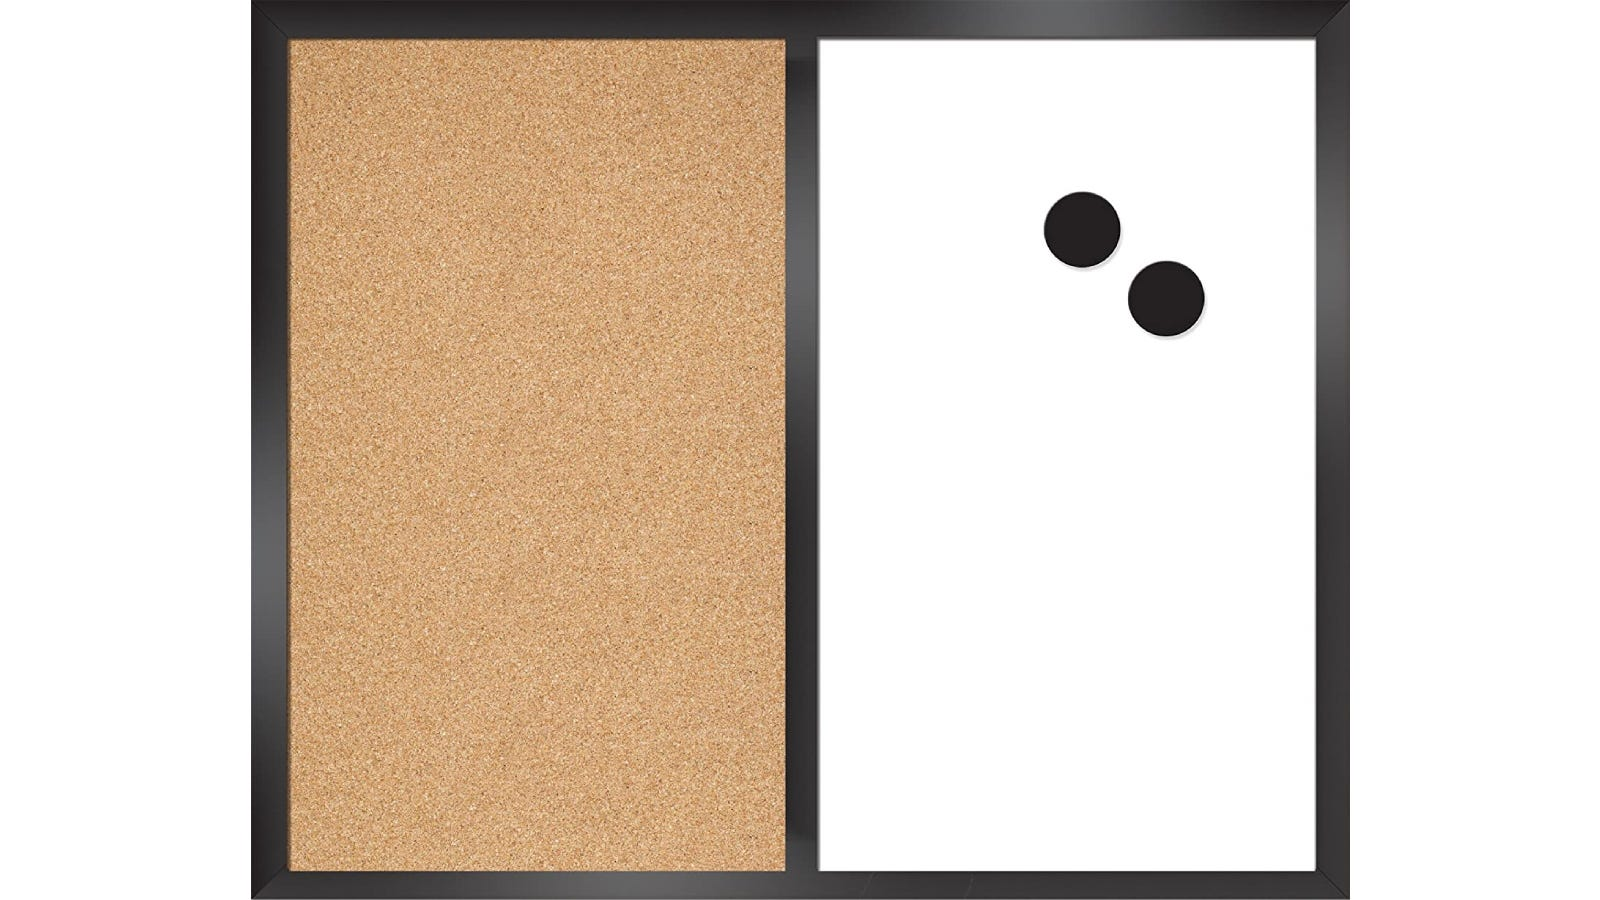 A bulletin board vertically split in half with cork board on the left and white board on the right.